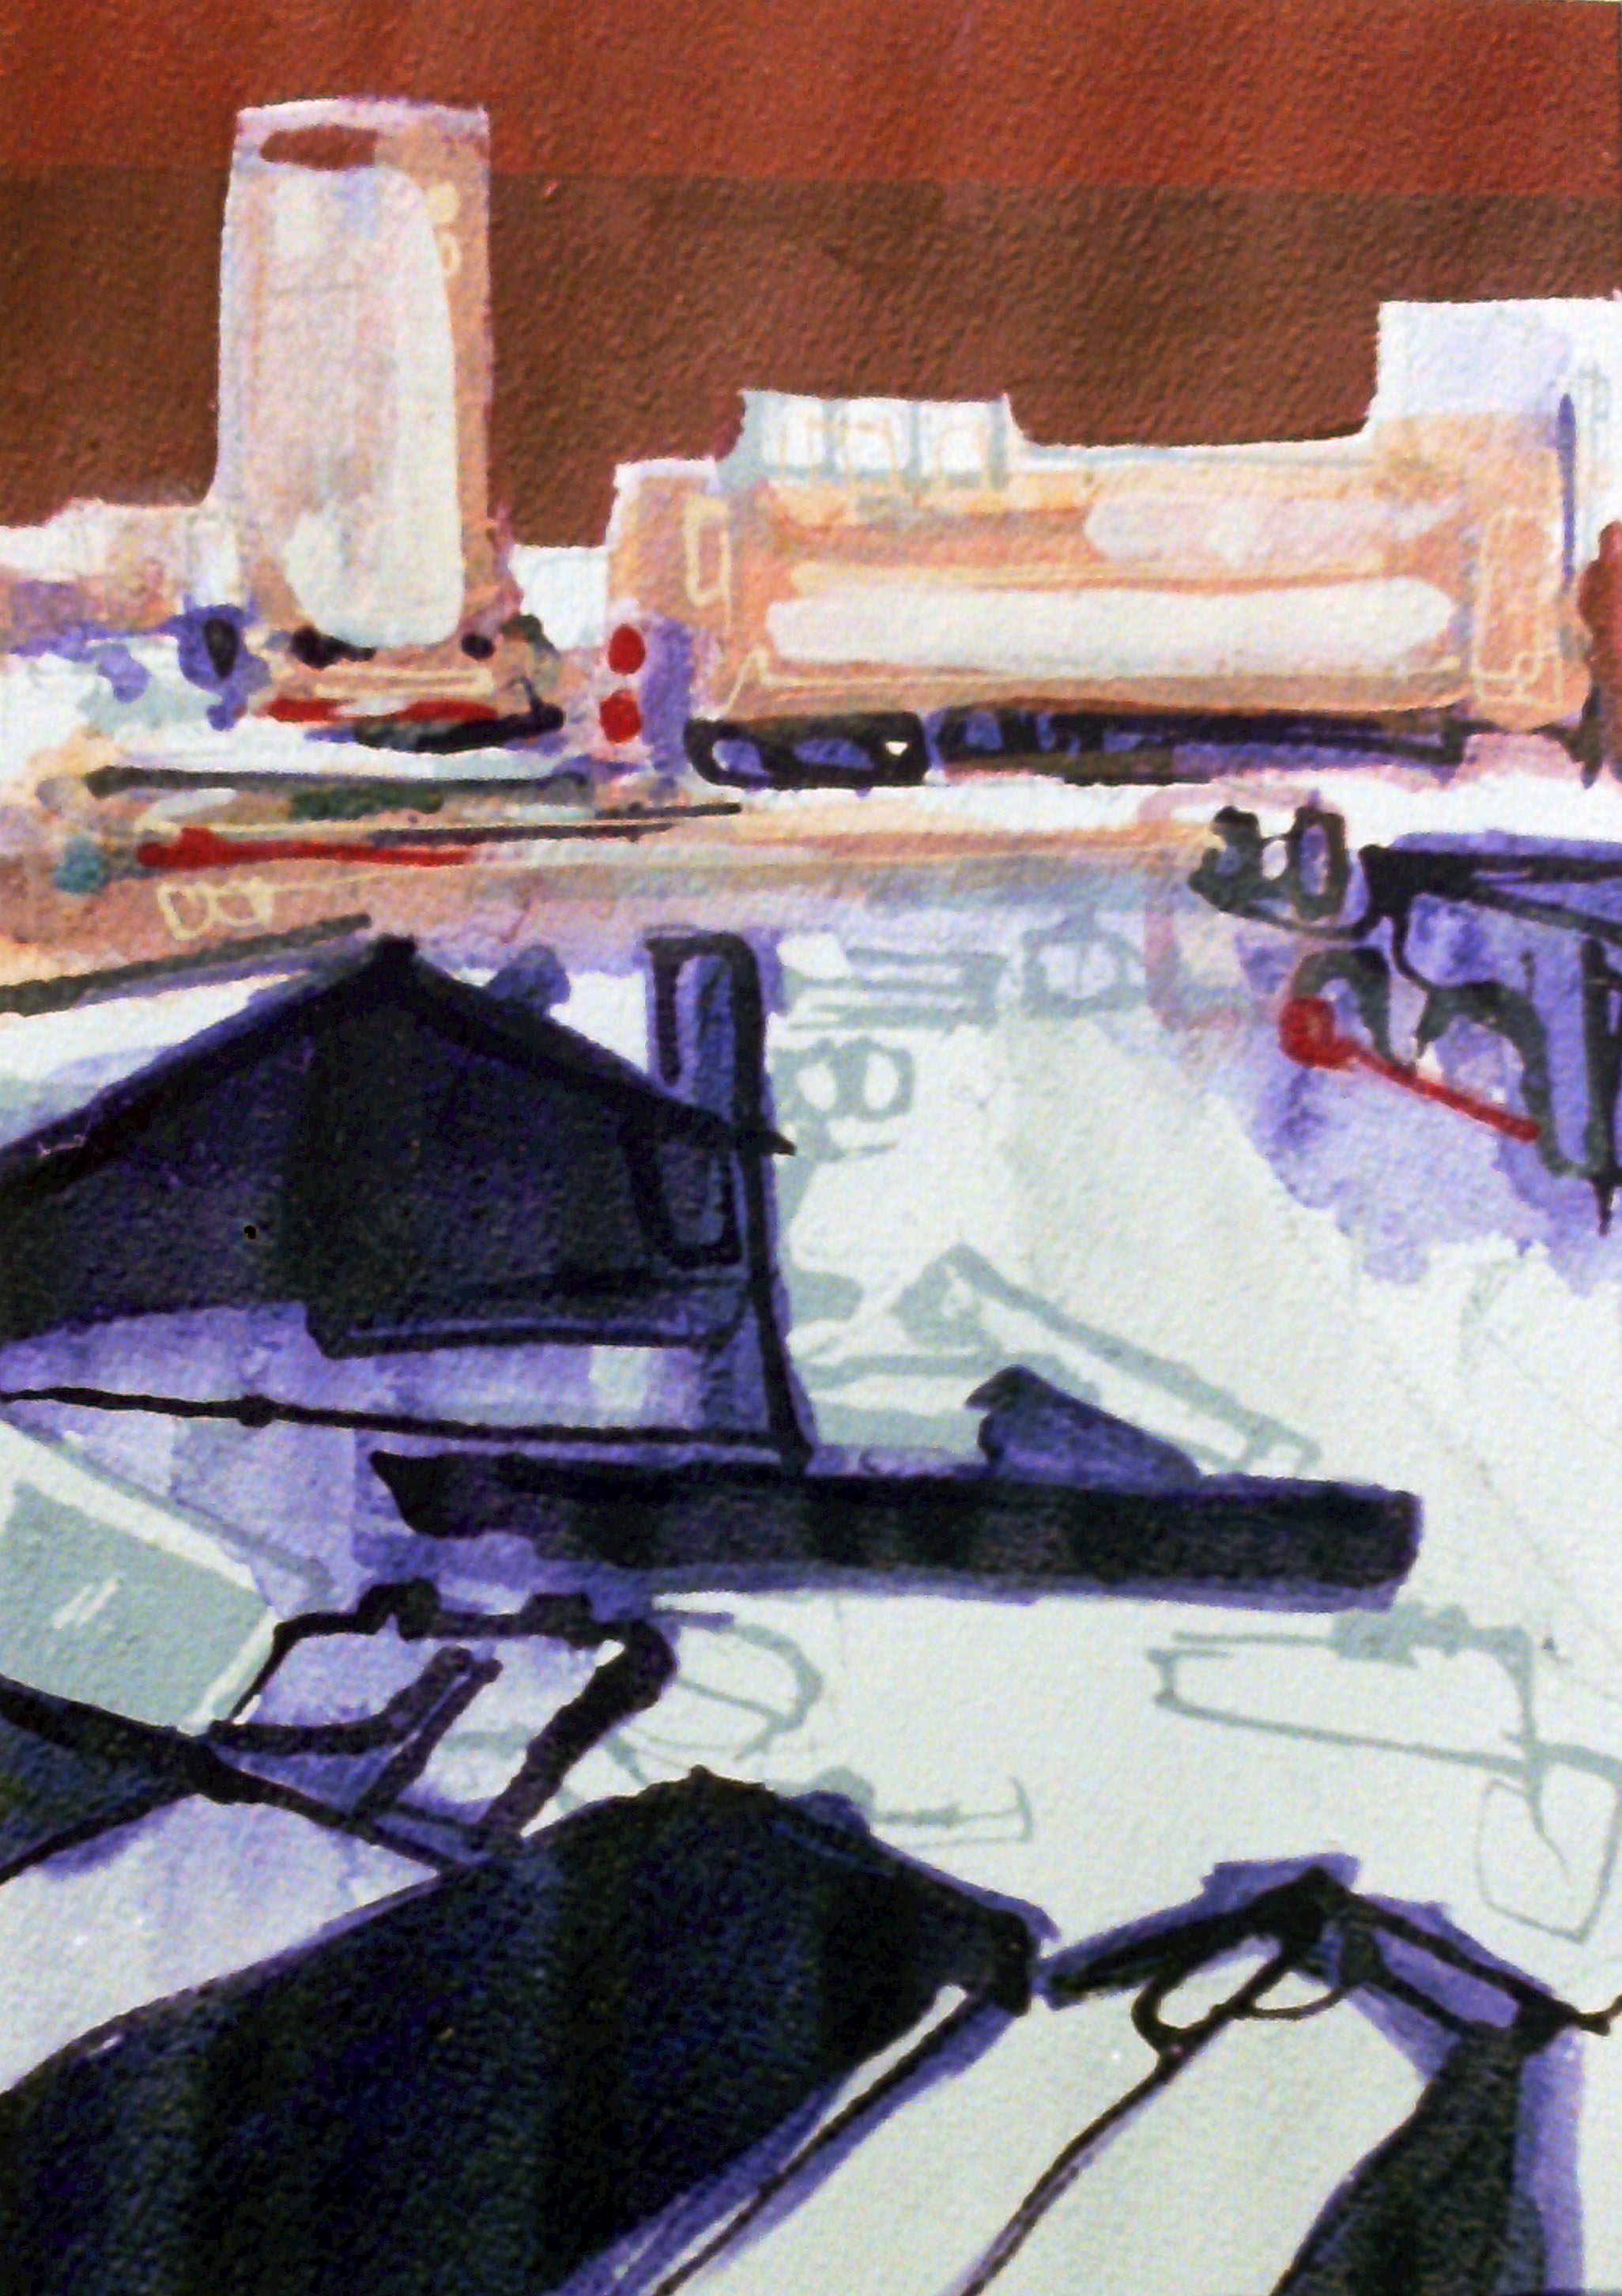 acrylic on paper, 30 x 50cm, 2001 sold